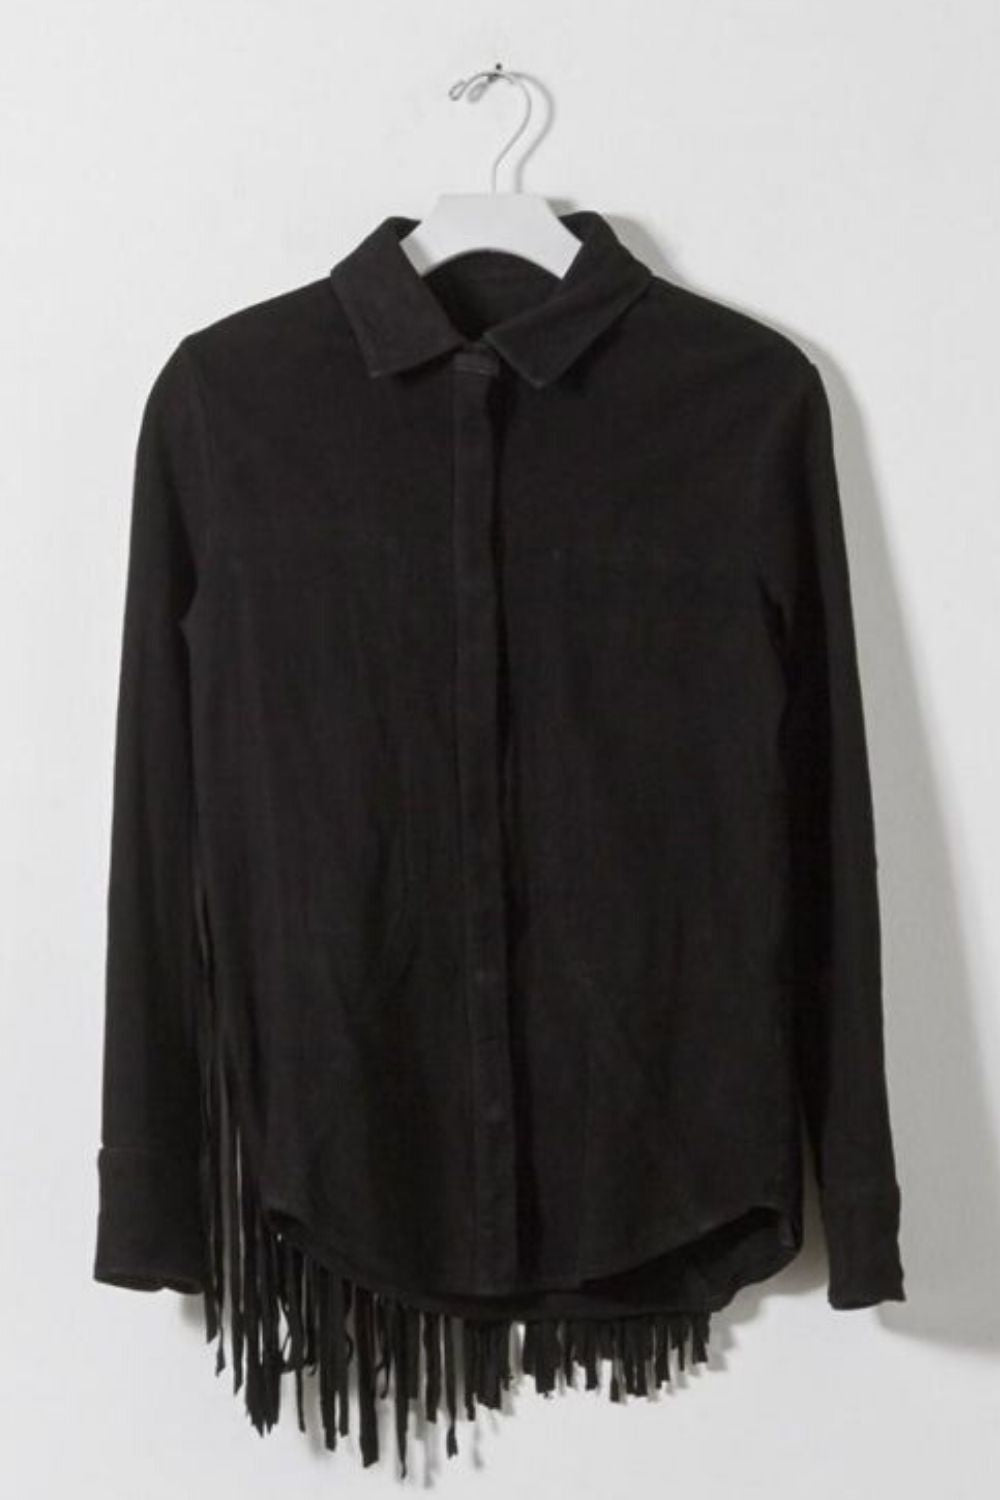 RTA Miles Women's Fringed Suede Leather Snap Front Black Shirt Jacket - Small - Luxe Fashion Finds